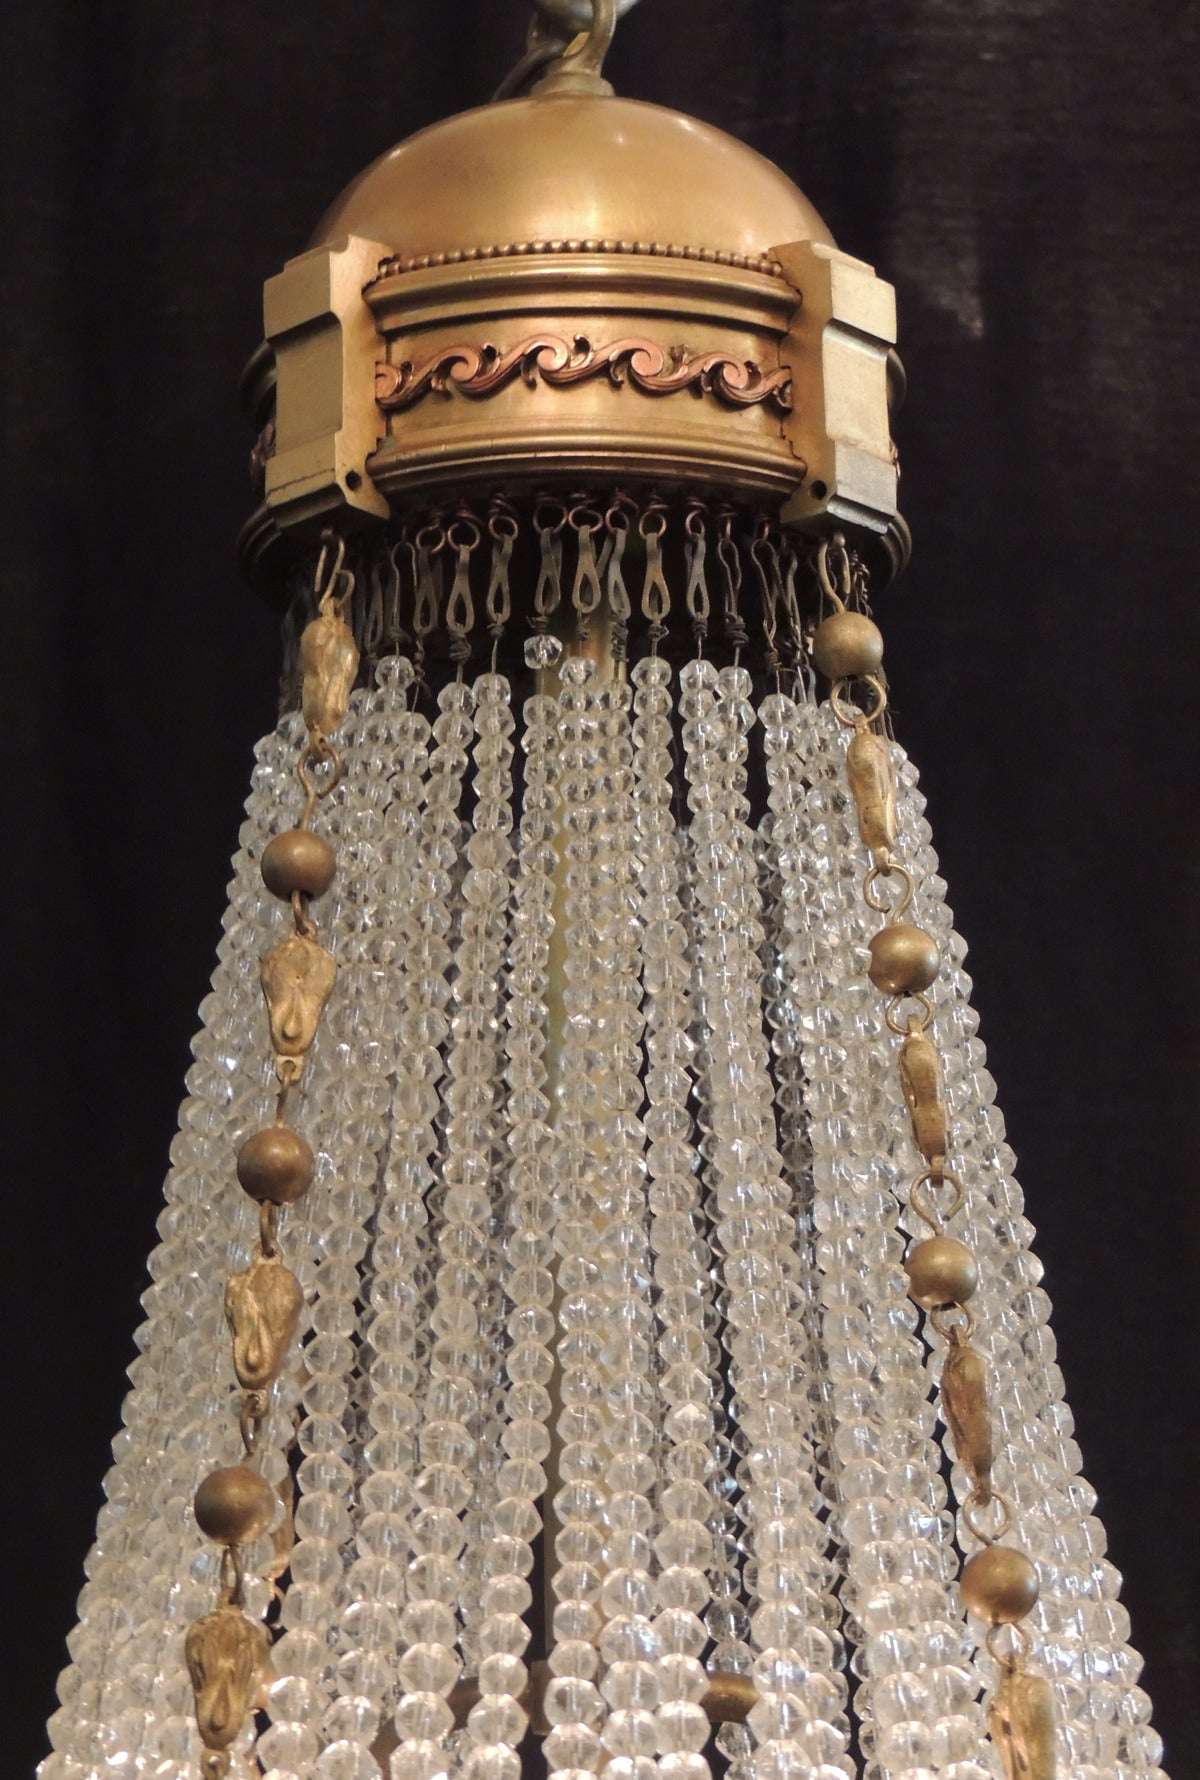 Early 20th C French Empire Style Crystal Chandelier For Sale at